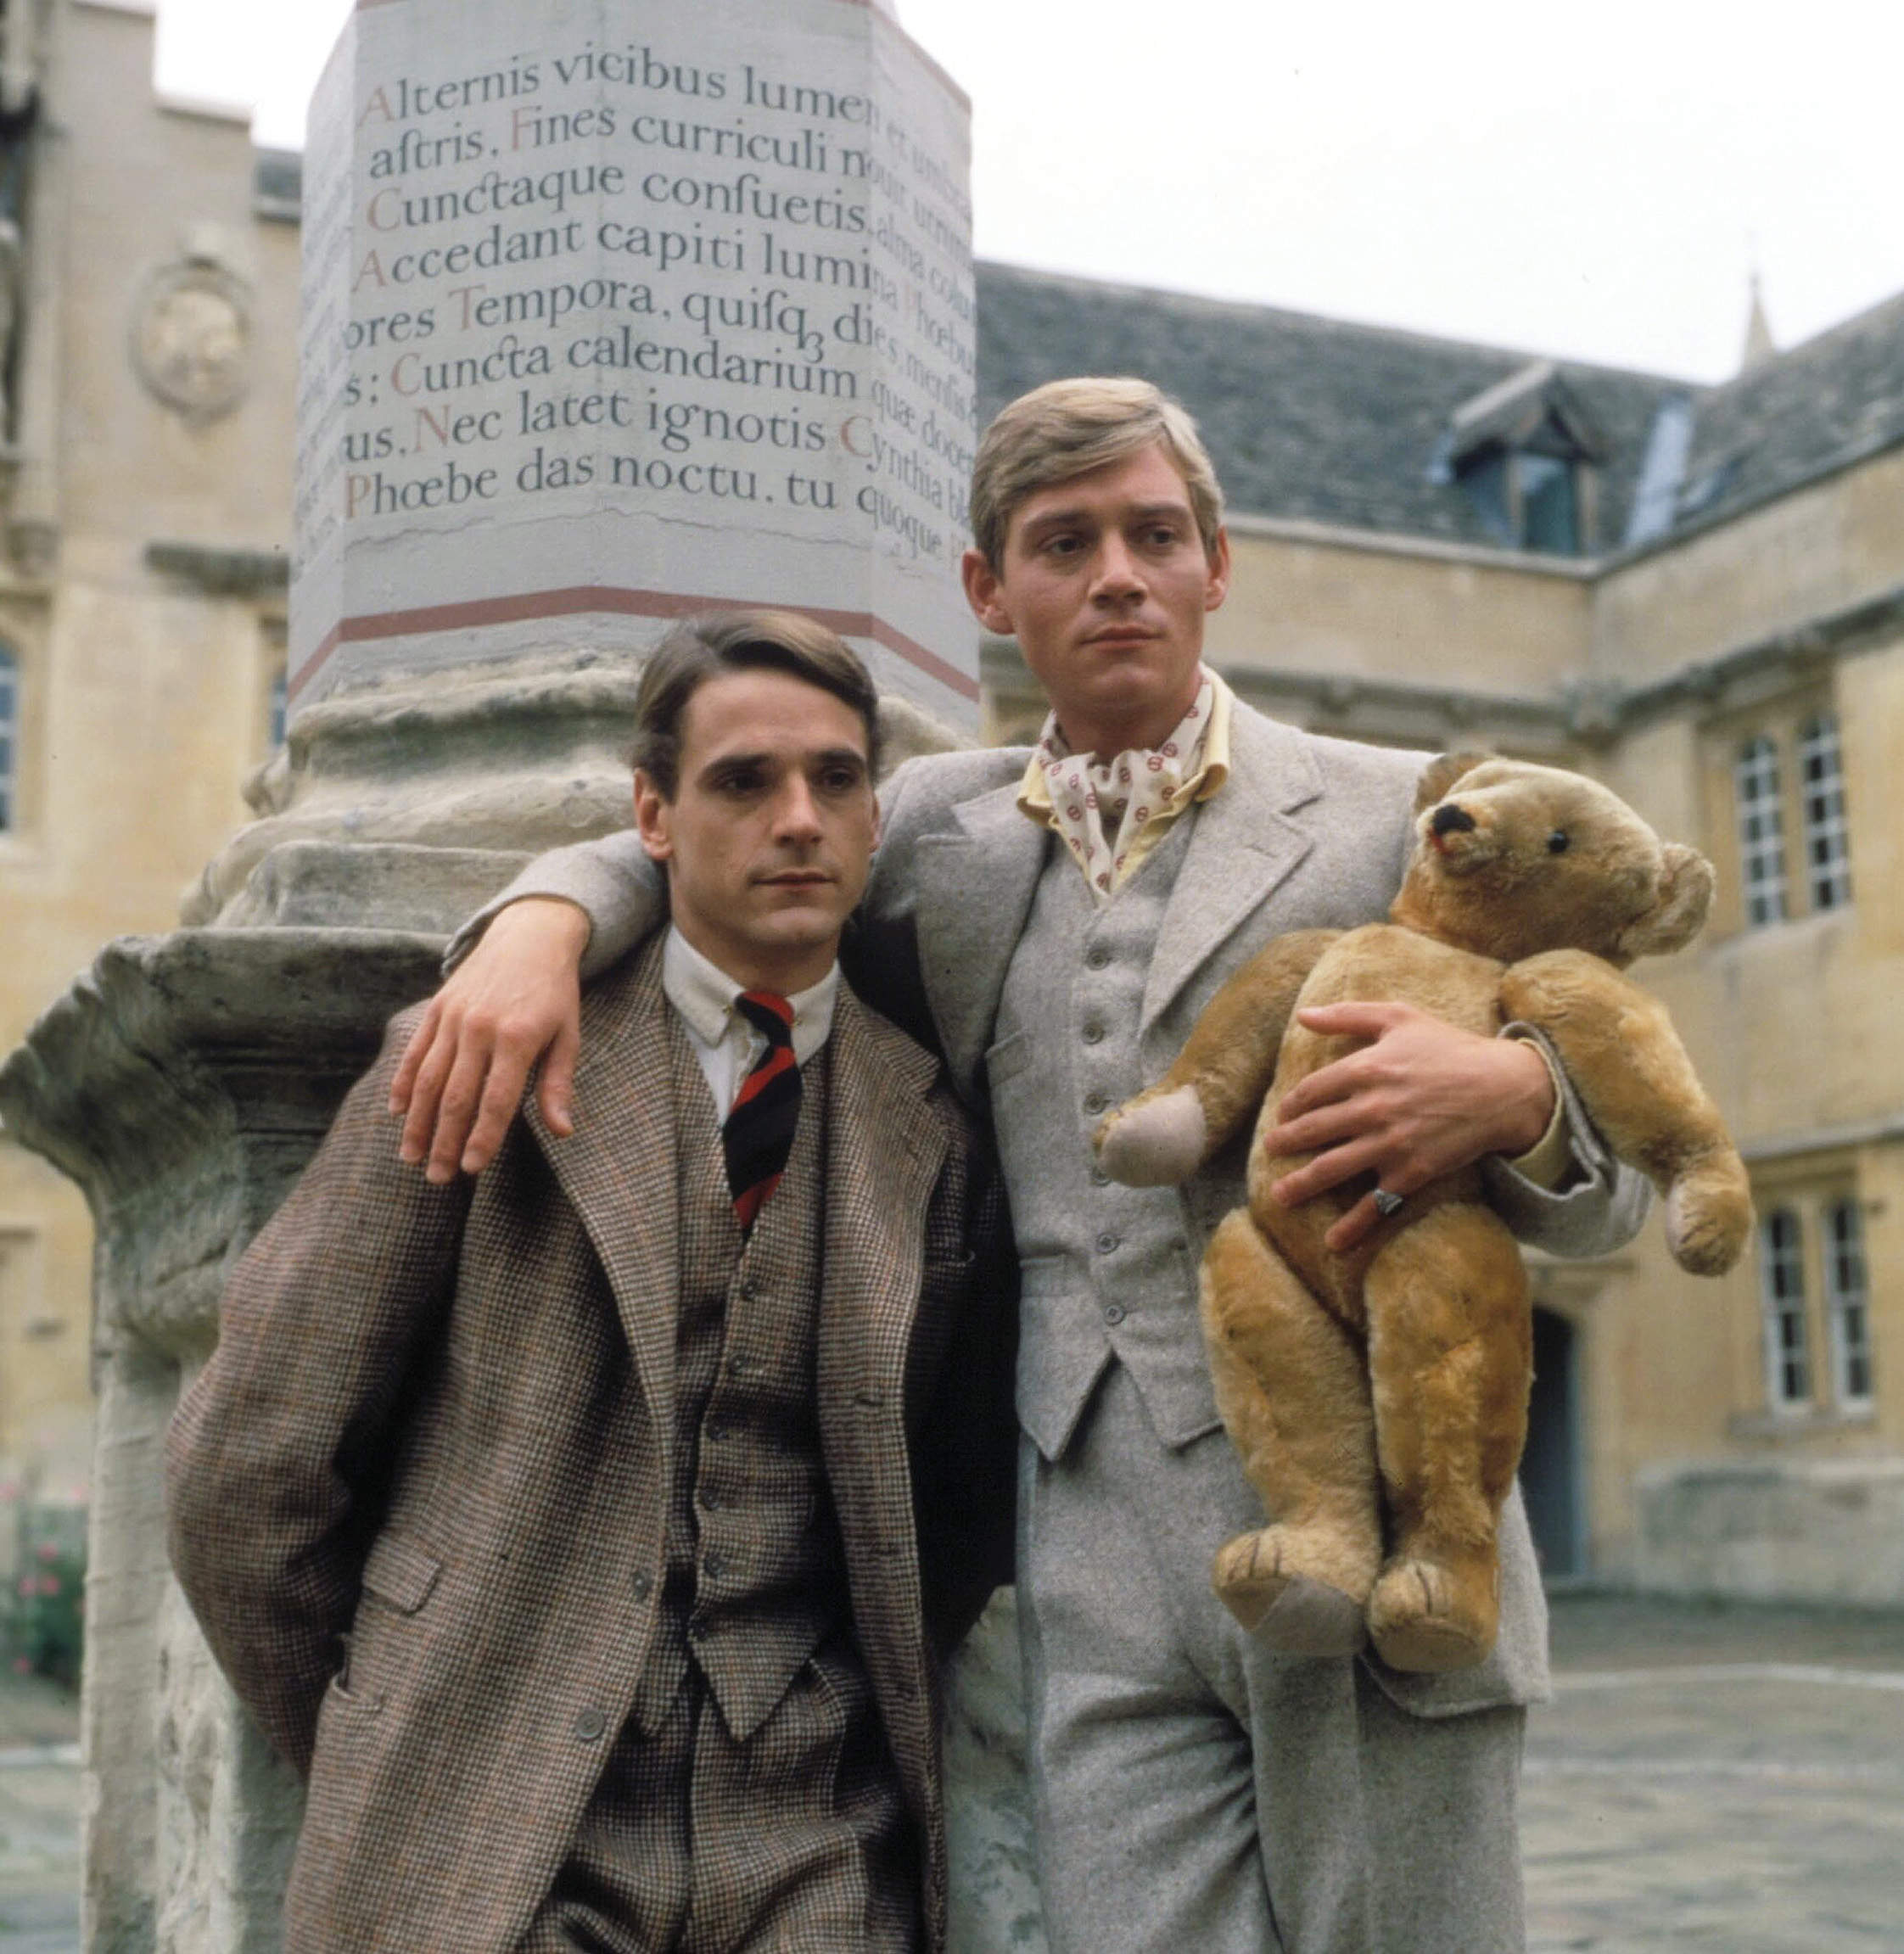 Brideshead Revisited is maddeningly slow – just like real life